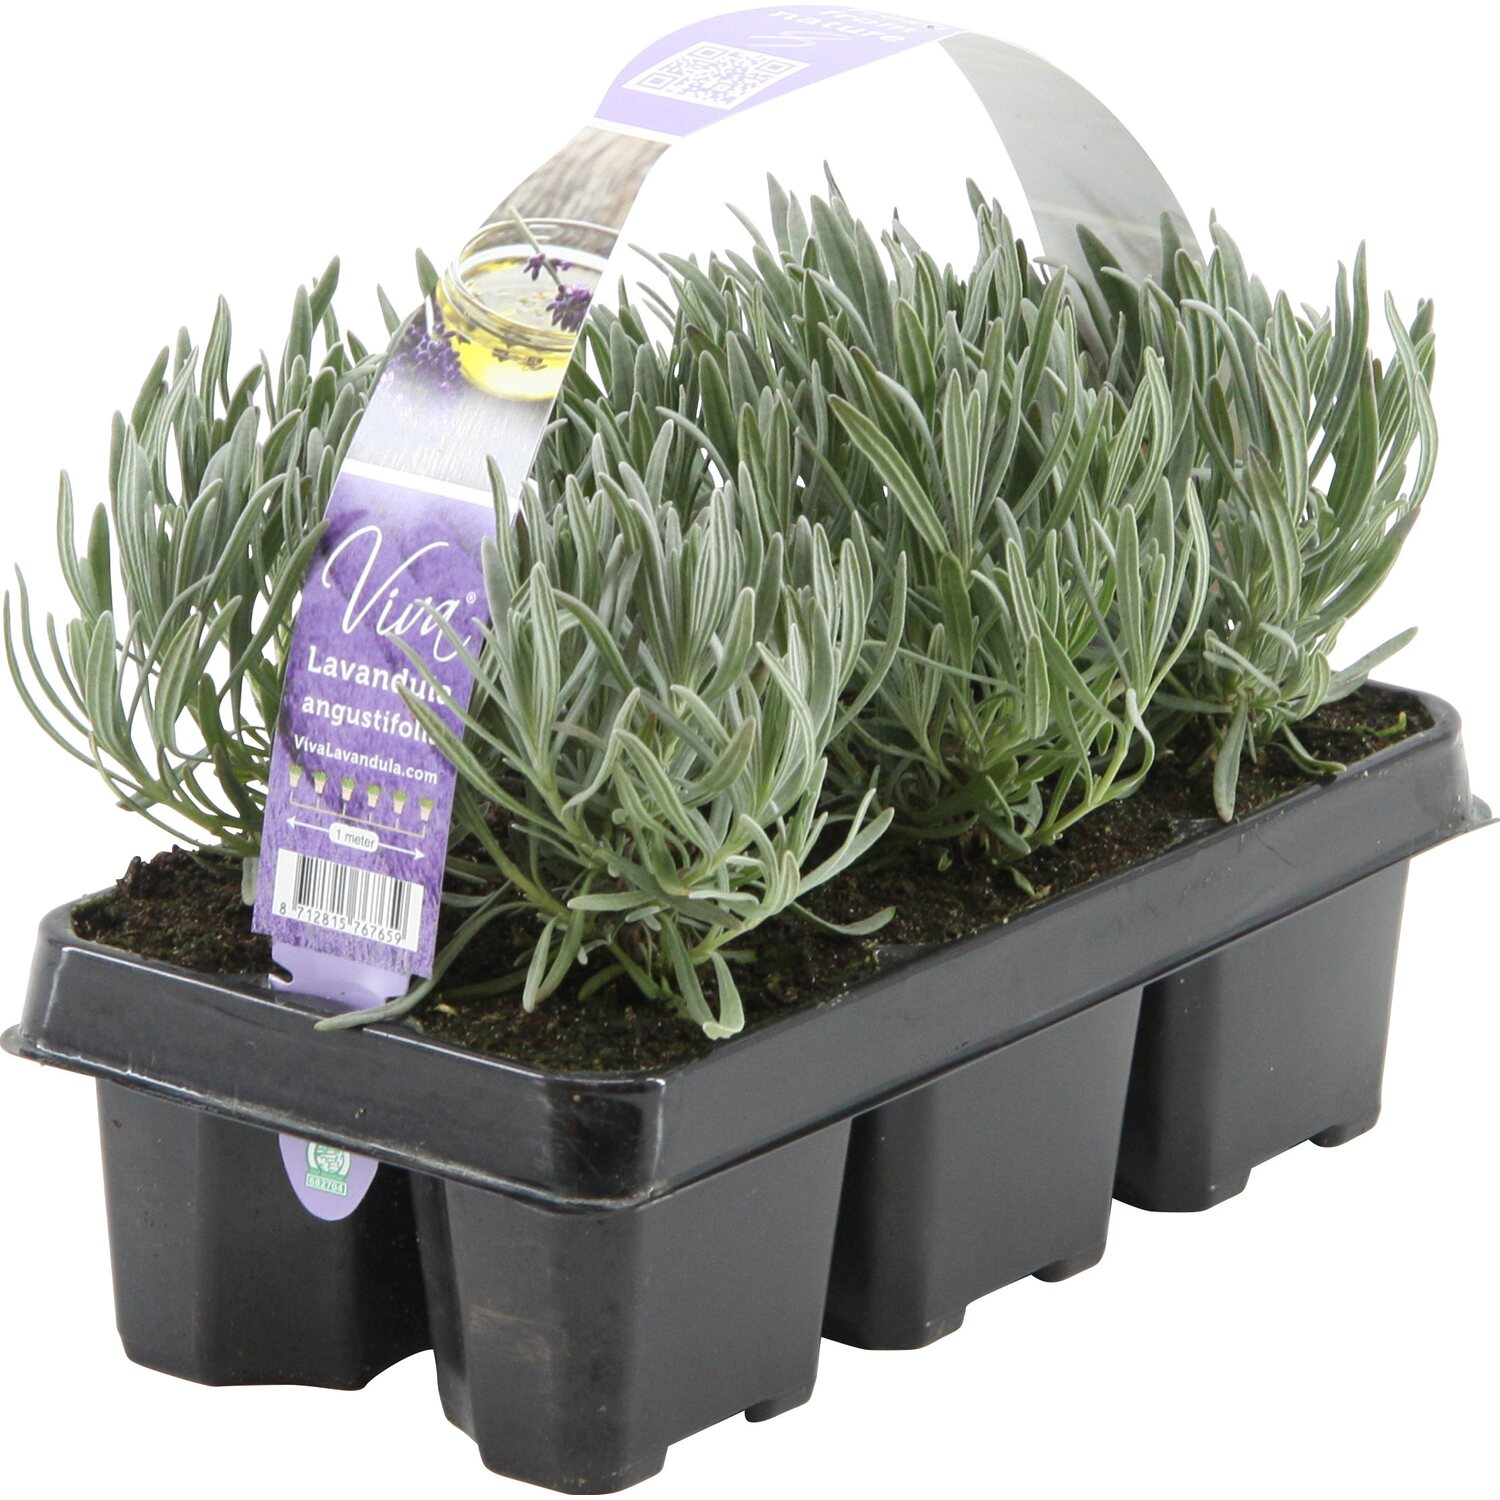 obi lavendel hidcote 6er pack lavandula angustifolia kaufen bei obi. Black Bedroom Furniture Sets. Home Design Ideas